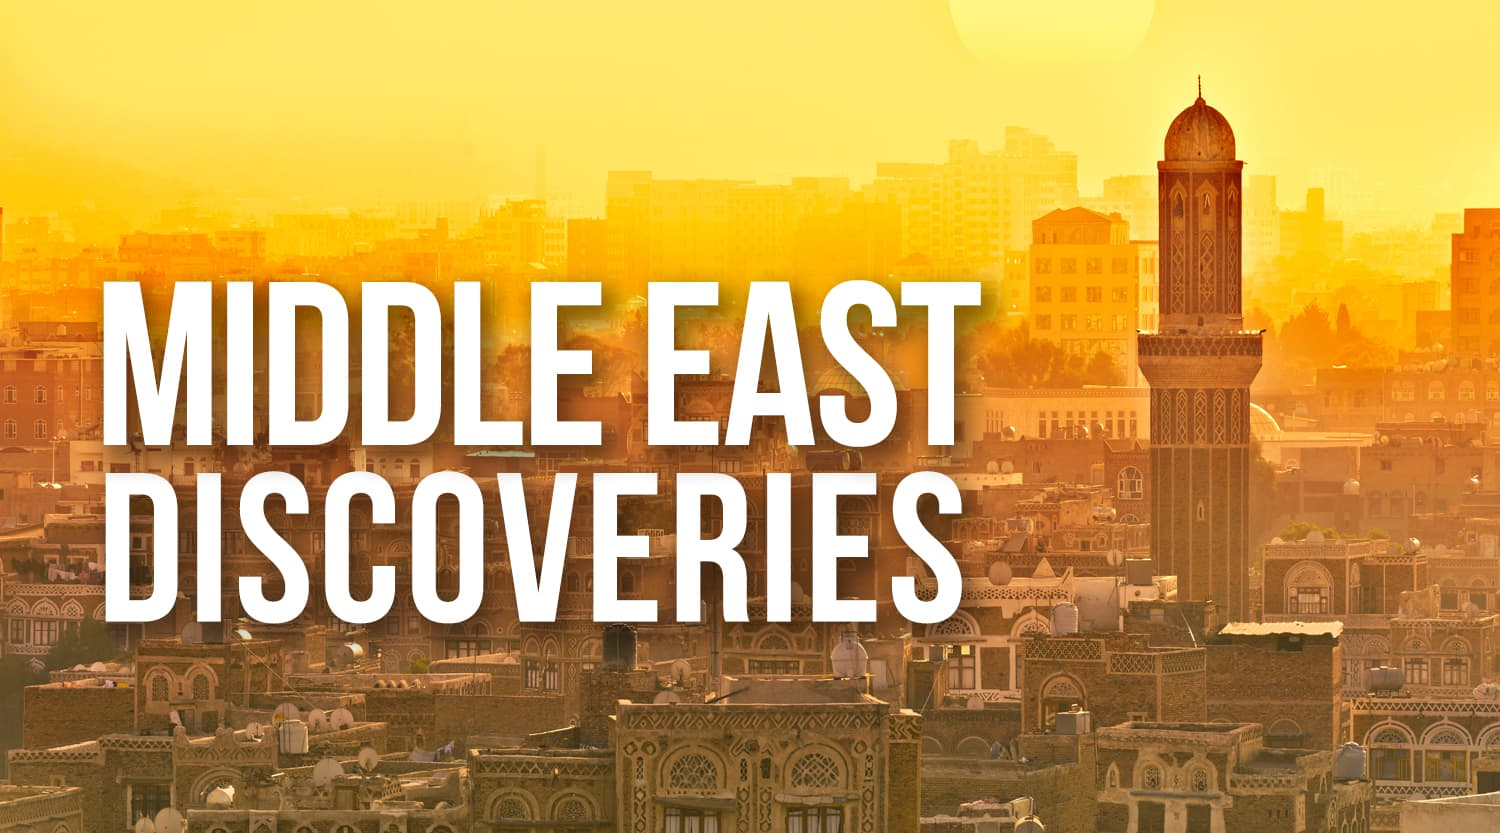 Middle East Discoveries